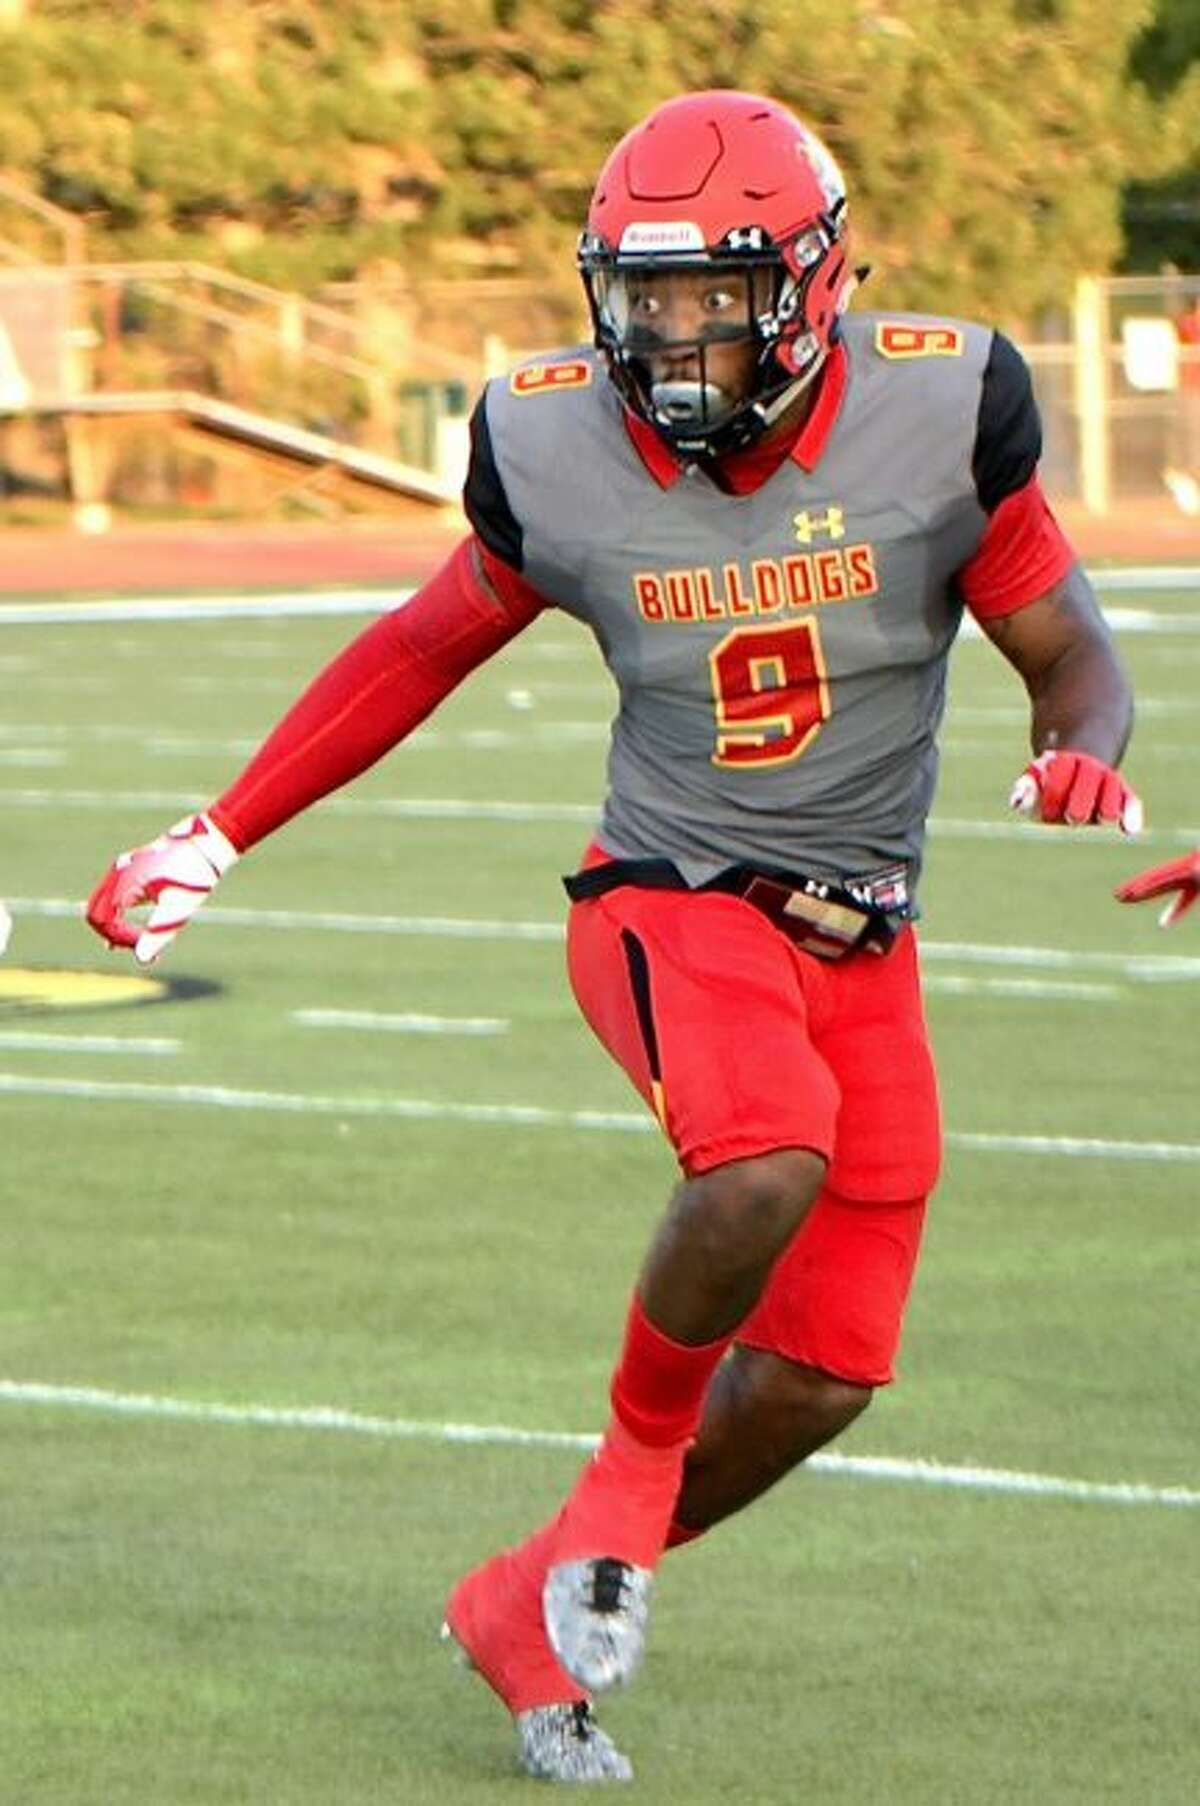 DeShaunThrower was the GLIAC Defensive Player of The Week in Week 1. (Photo Courtesy of Ferris State Athletics)